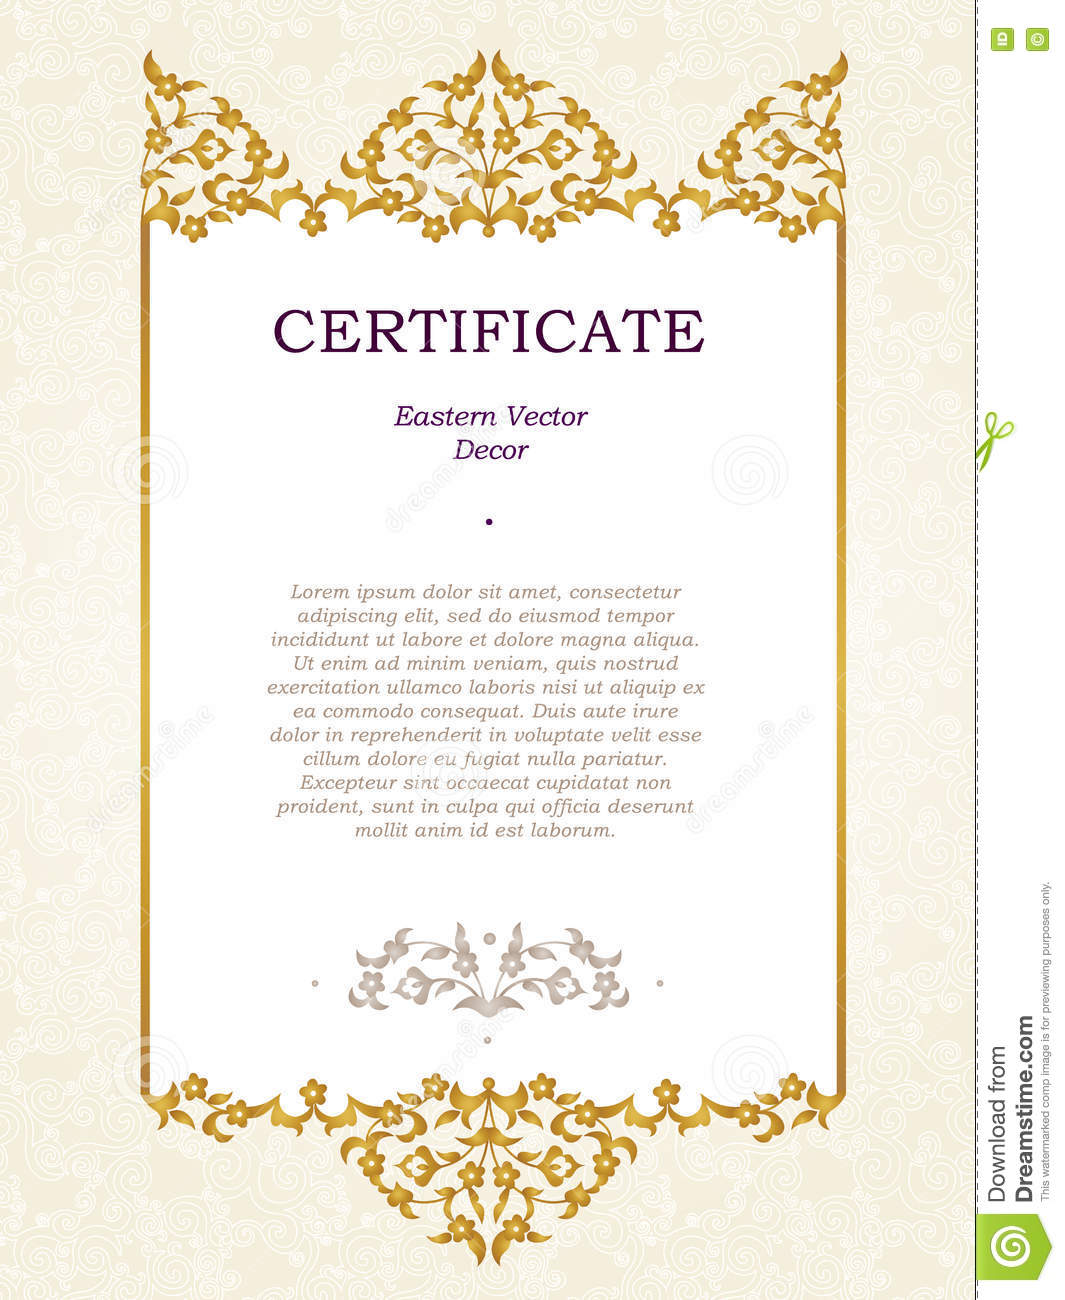 Elegant Marriage Certificate Template Golden Edition: Vector Certificate Template In Eastern Style. Stock